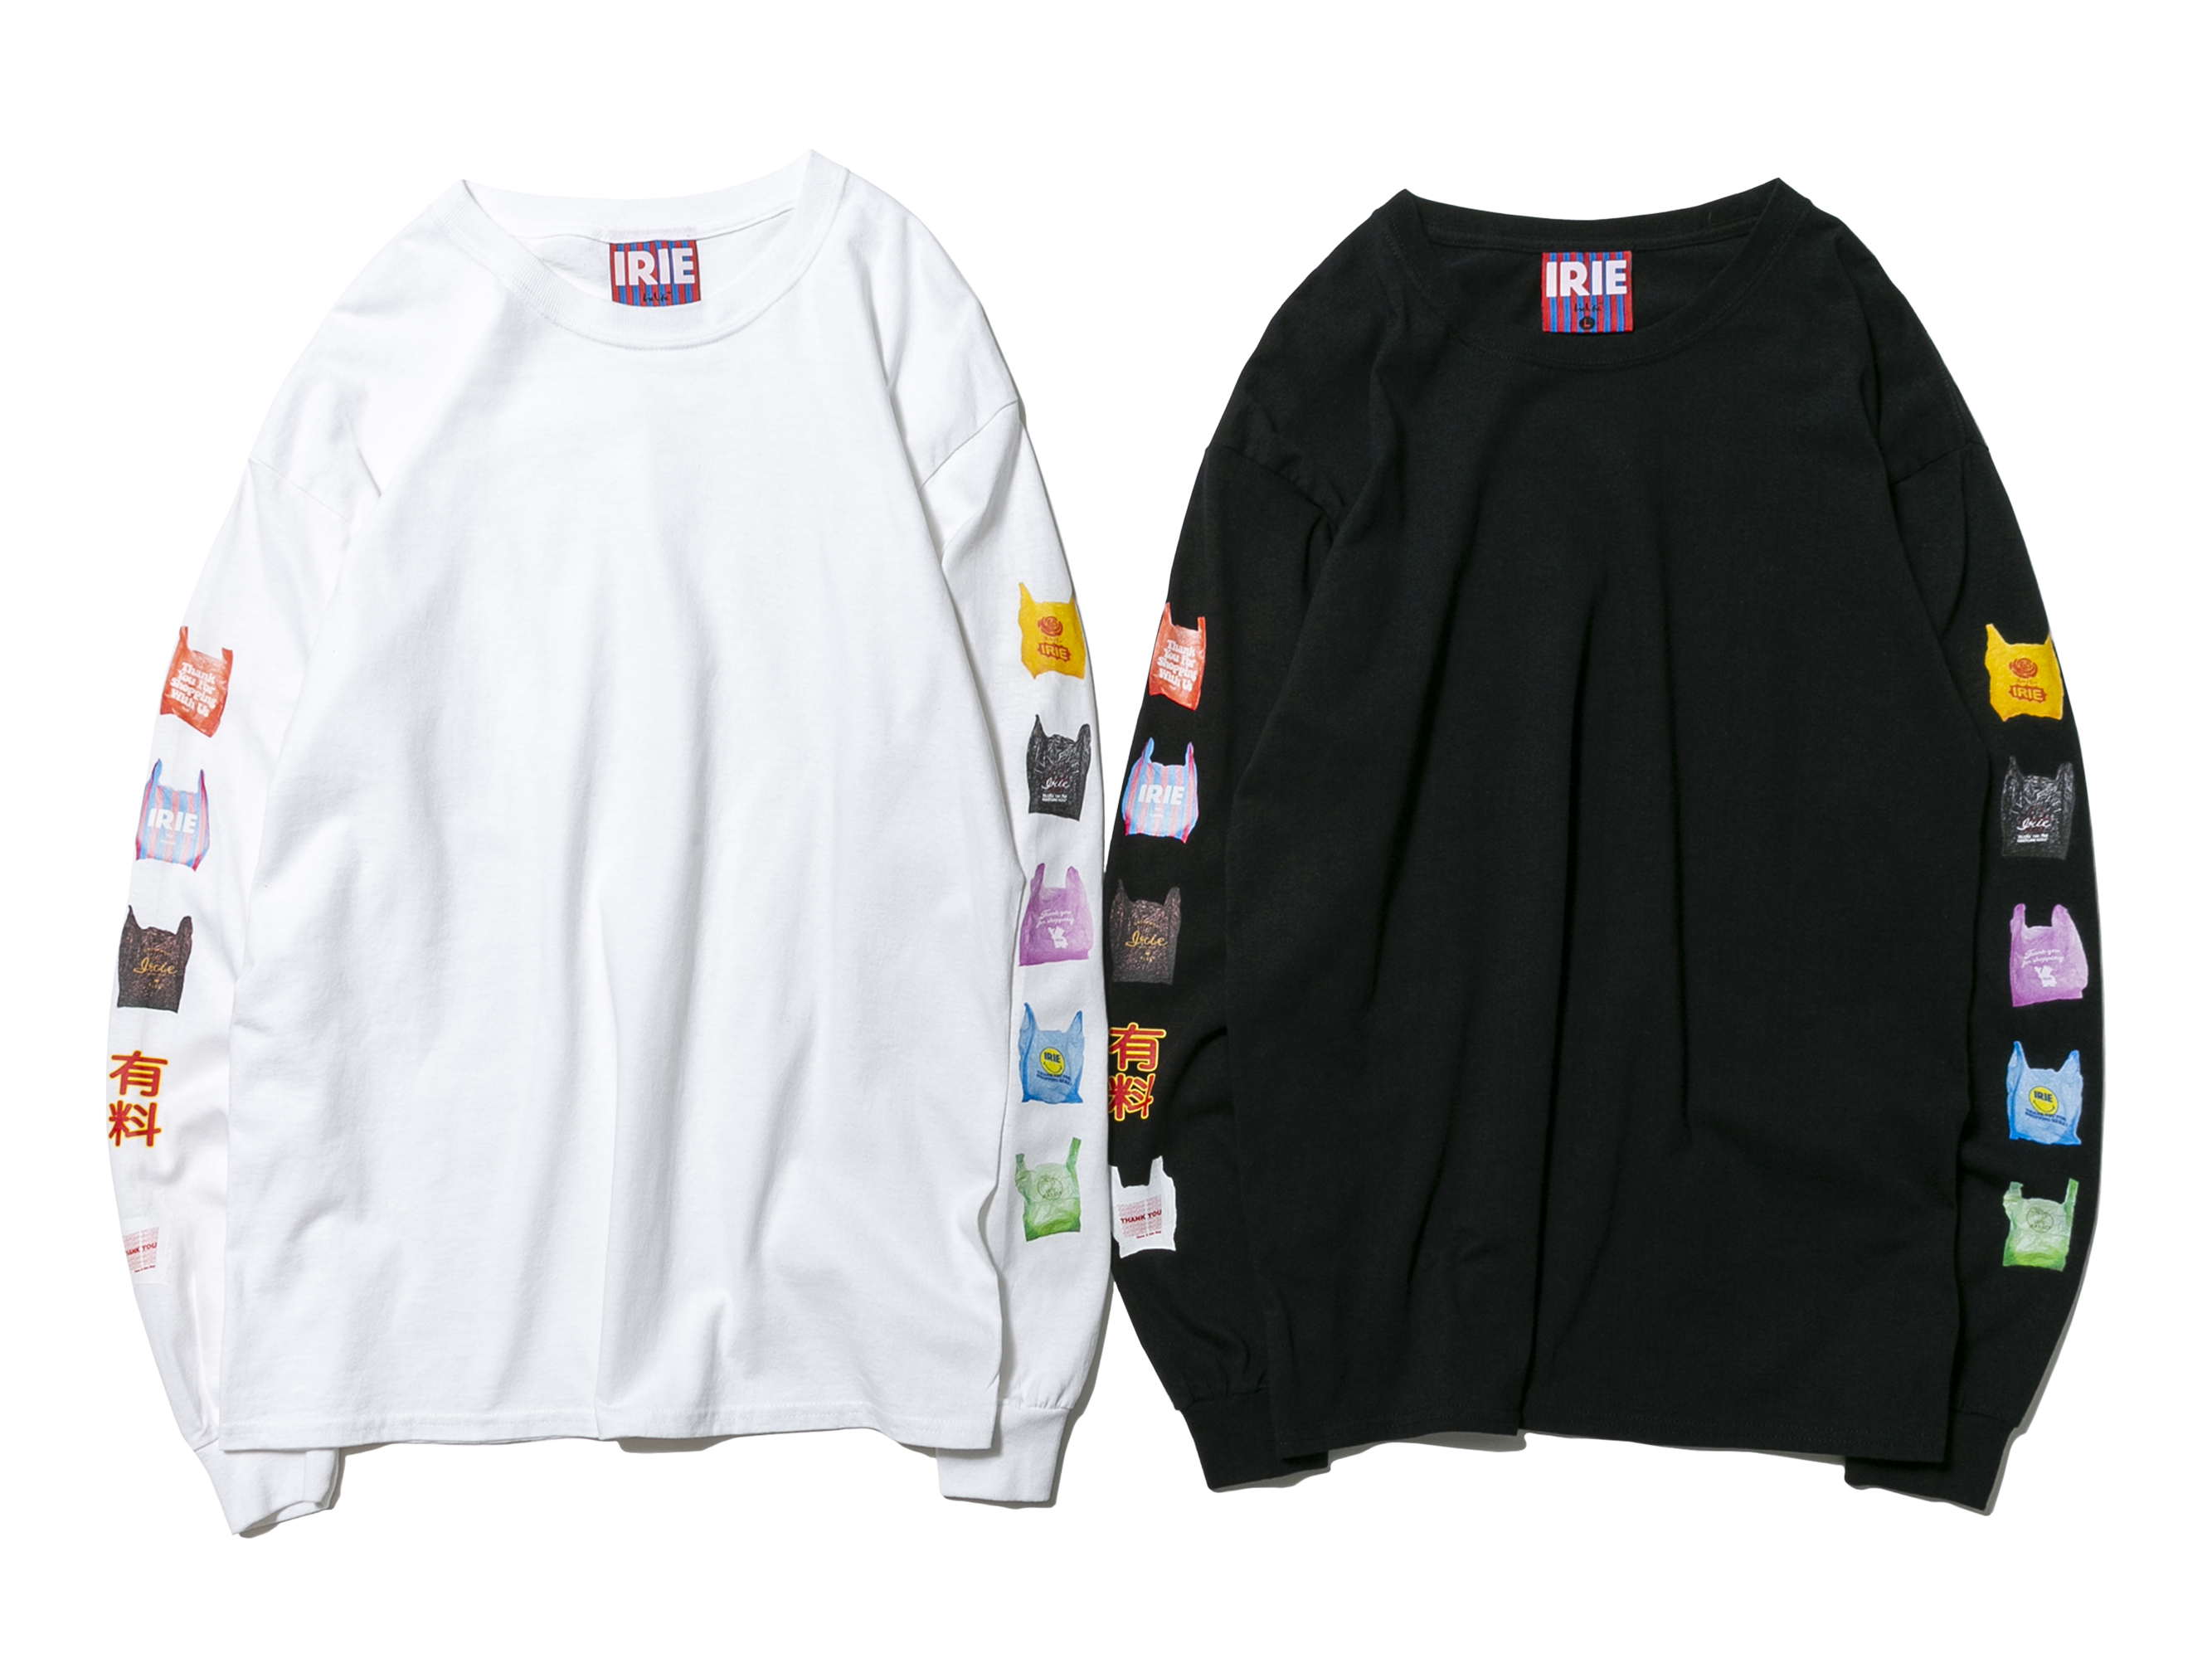 【20% OFF】PLASTIC BAG L/S TEE - IRIE by irielife